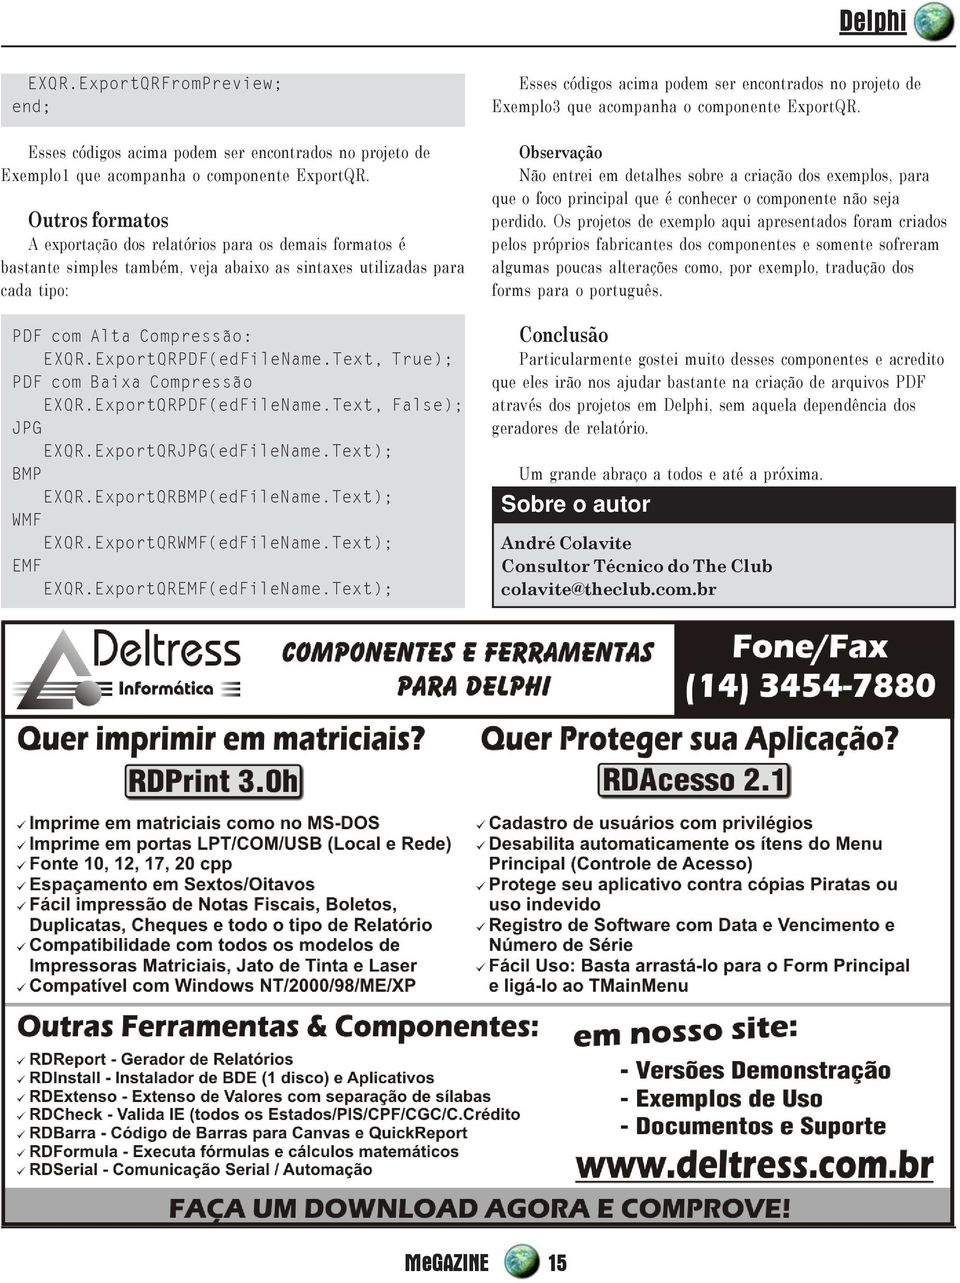 Text, True); PDF com Baixa Compressão EXQR.ExportQRPDF(edFileName.Text, False); JPG EXQR.ExportQRJPG(edFileName.Text); BMP EXQR.ExportQRBMP(edFileName.Text); WMF EXQR.ExportQRWMF(edFileName.